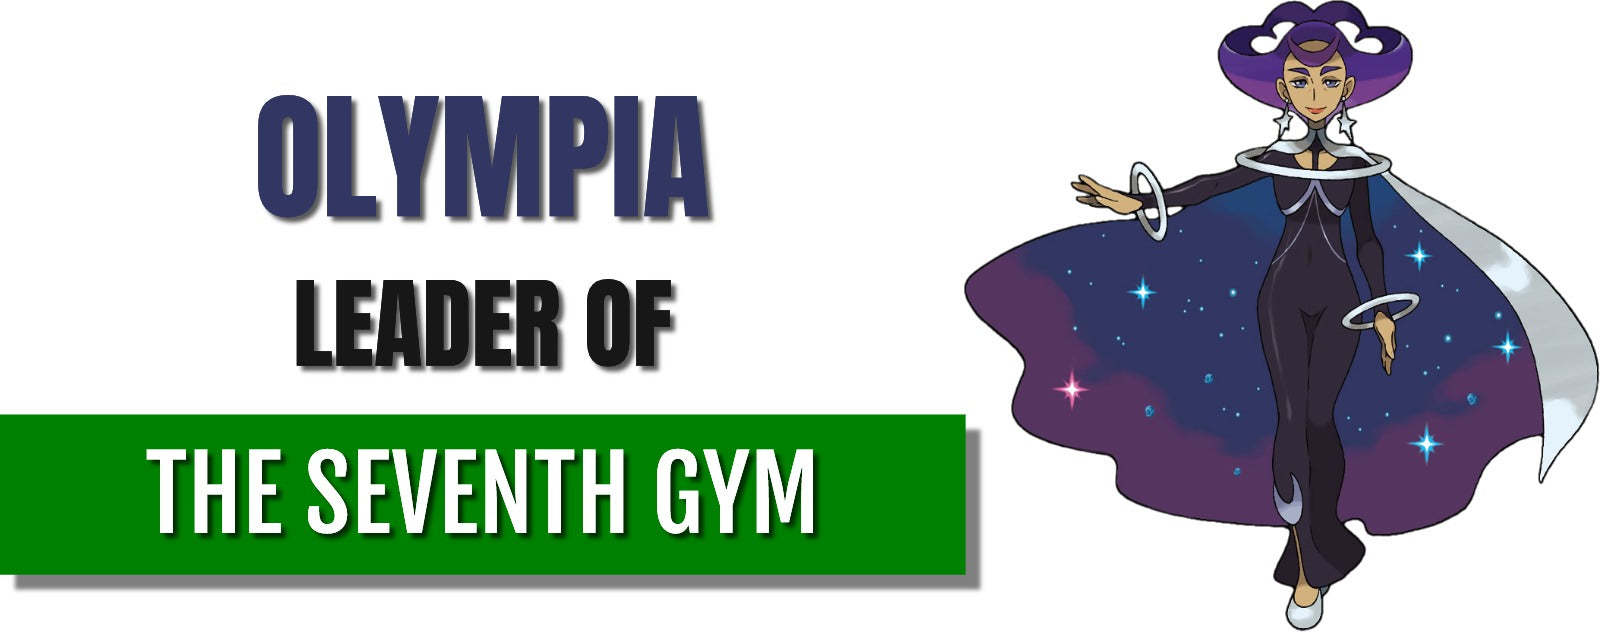 Olympa leader of the seventh gym